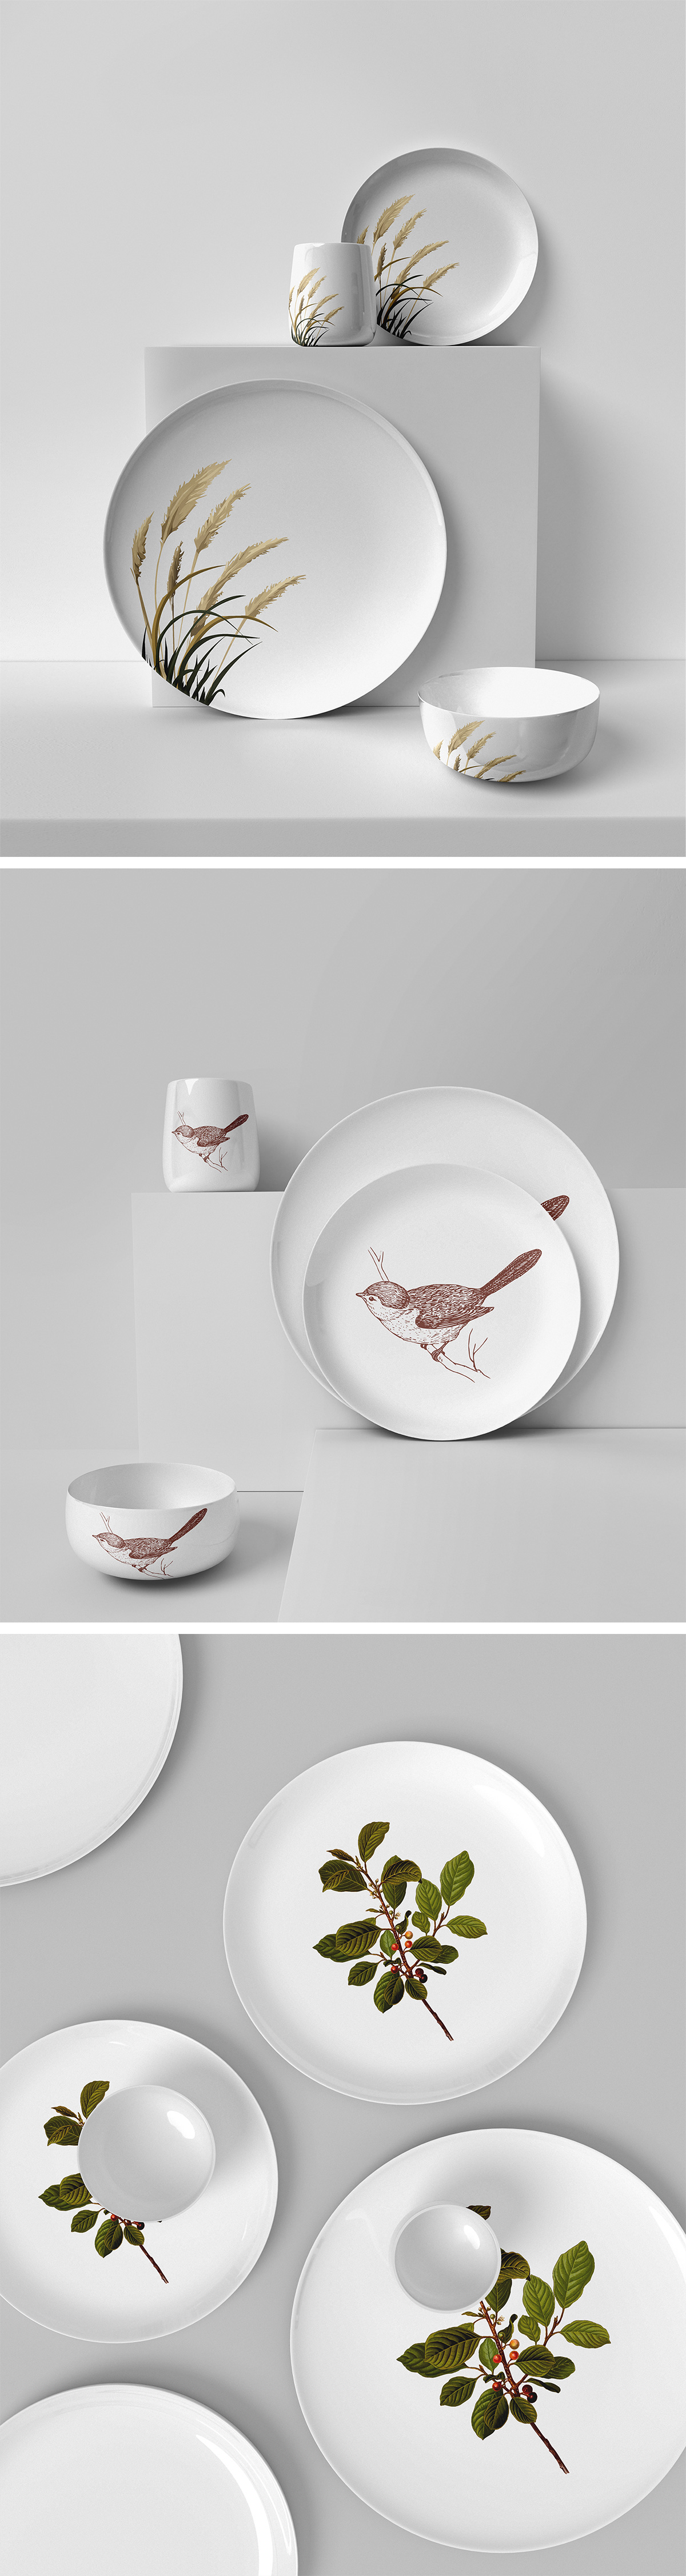 Kitchen Utensils Mockup